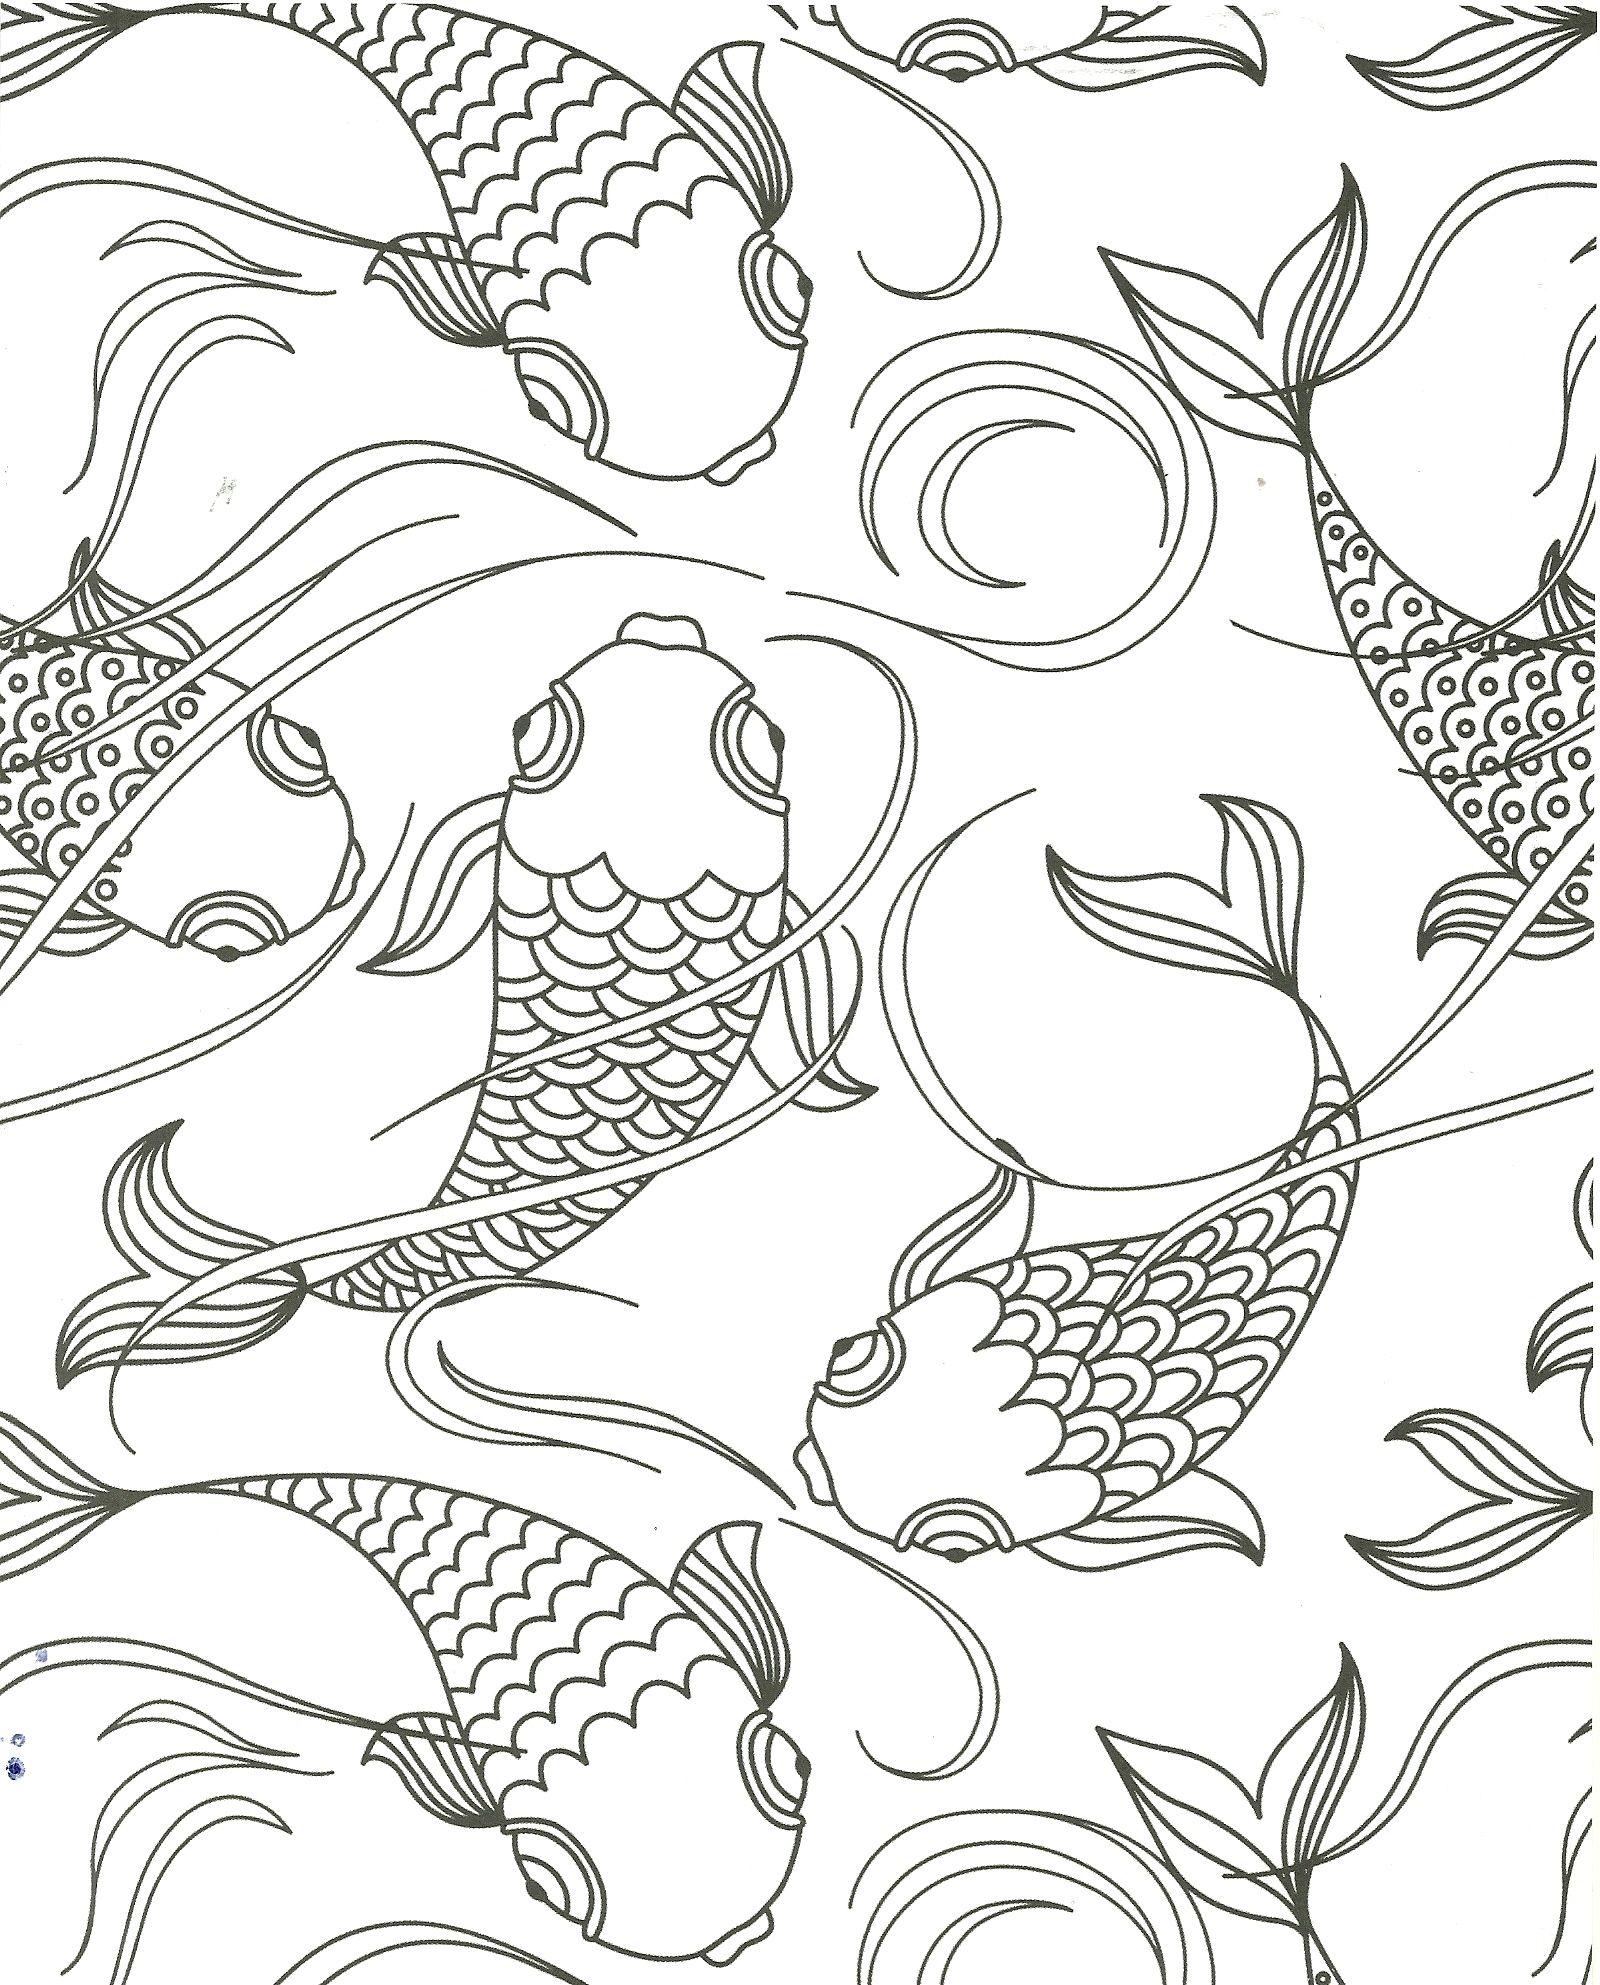 Koi pond fish coloring page | my coloring pages | Pinterest | Color ...